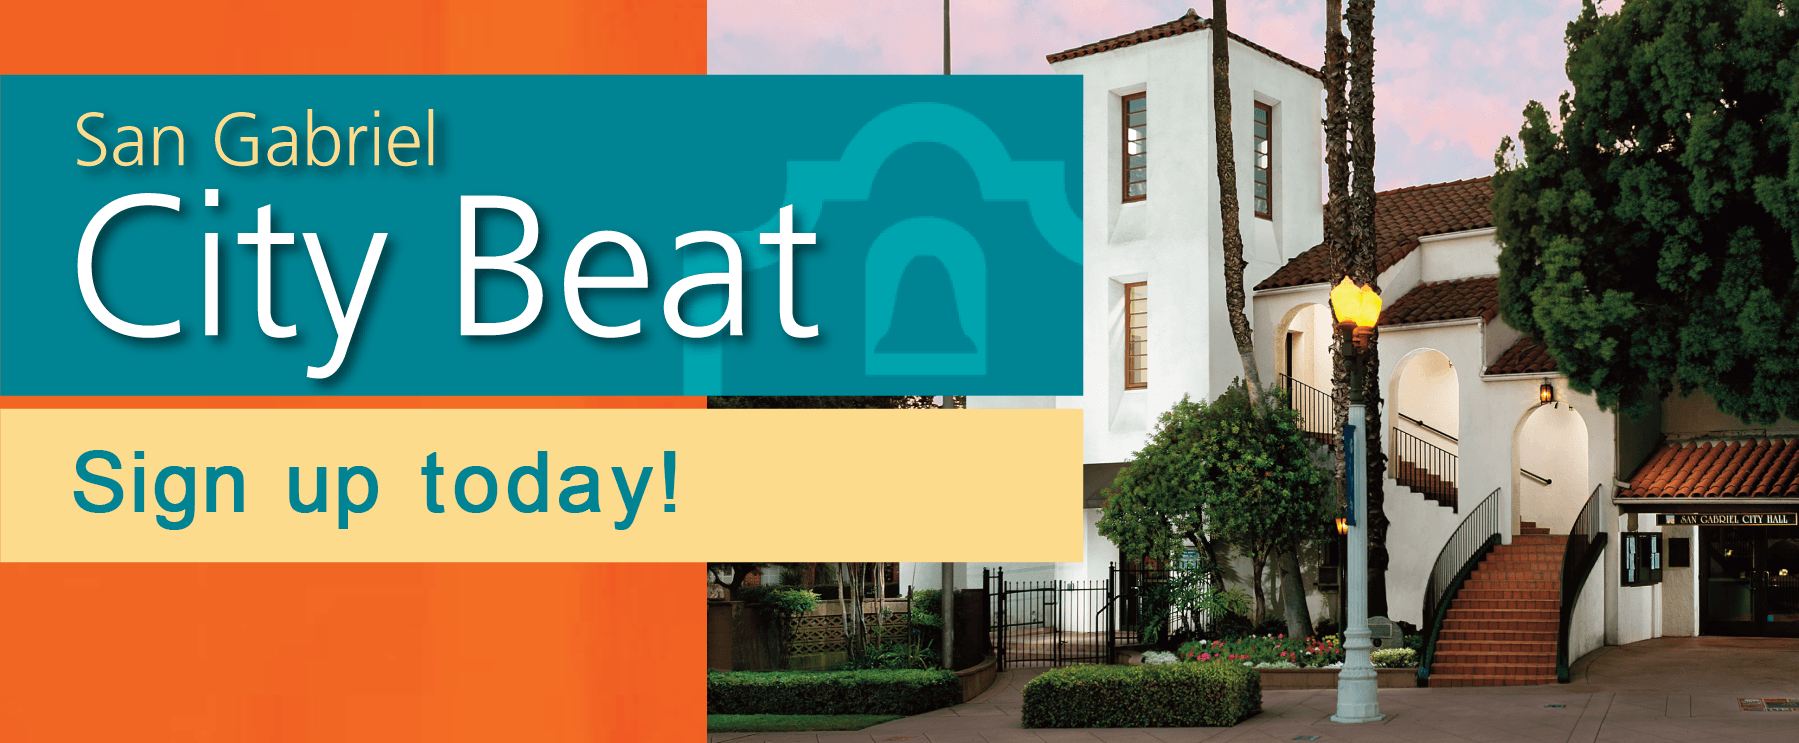 sign up today for city beat